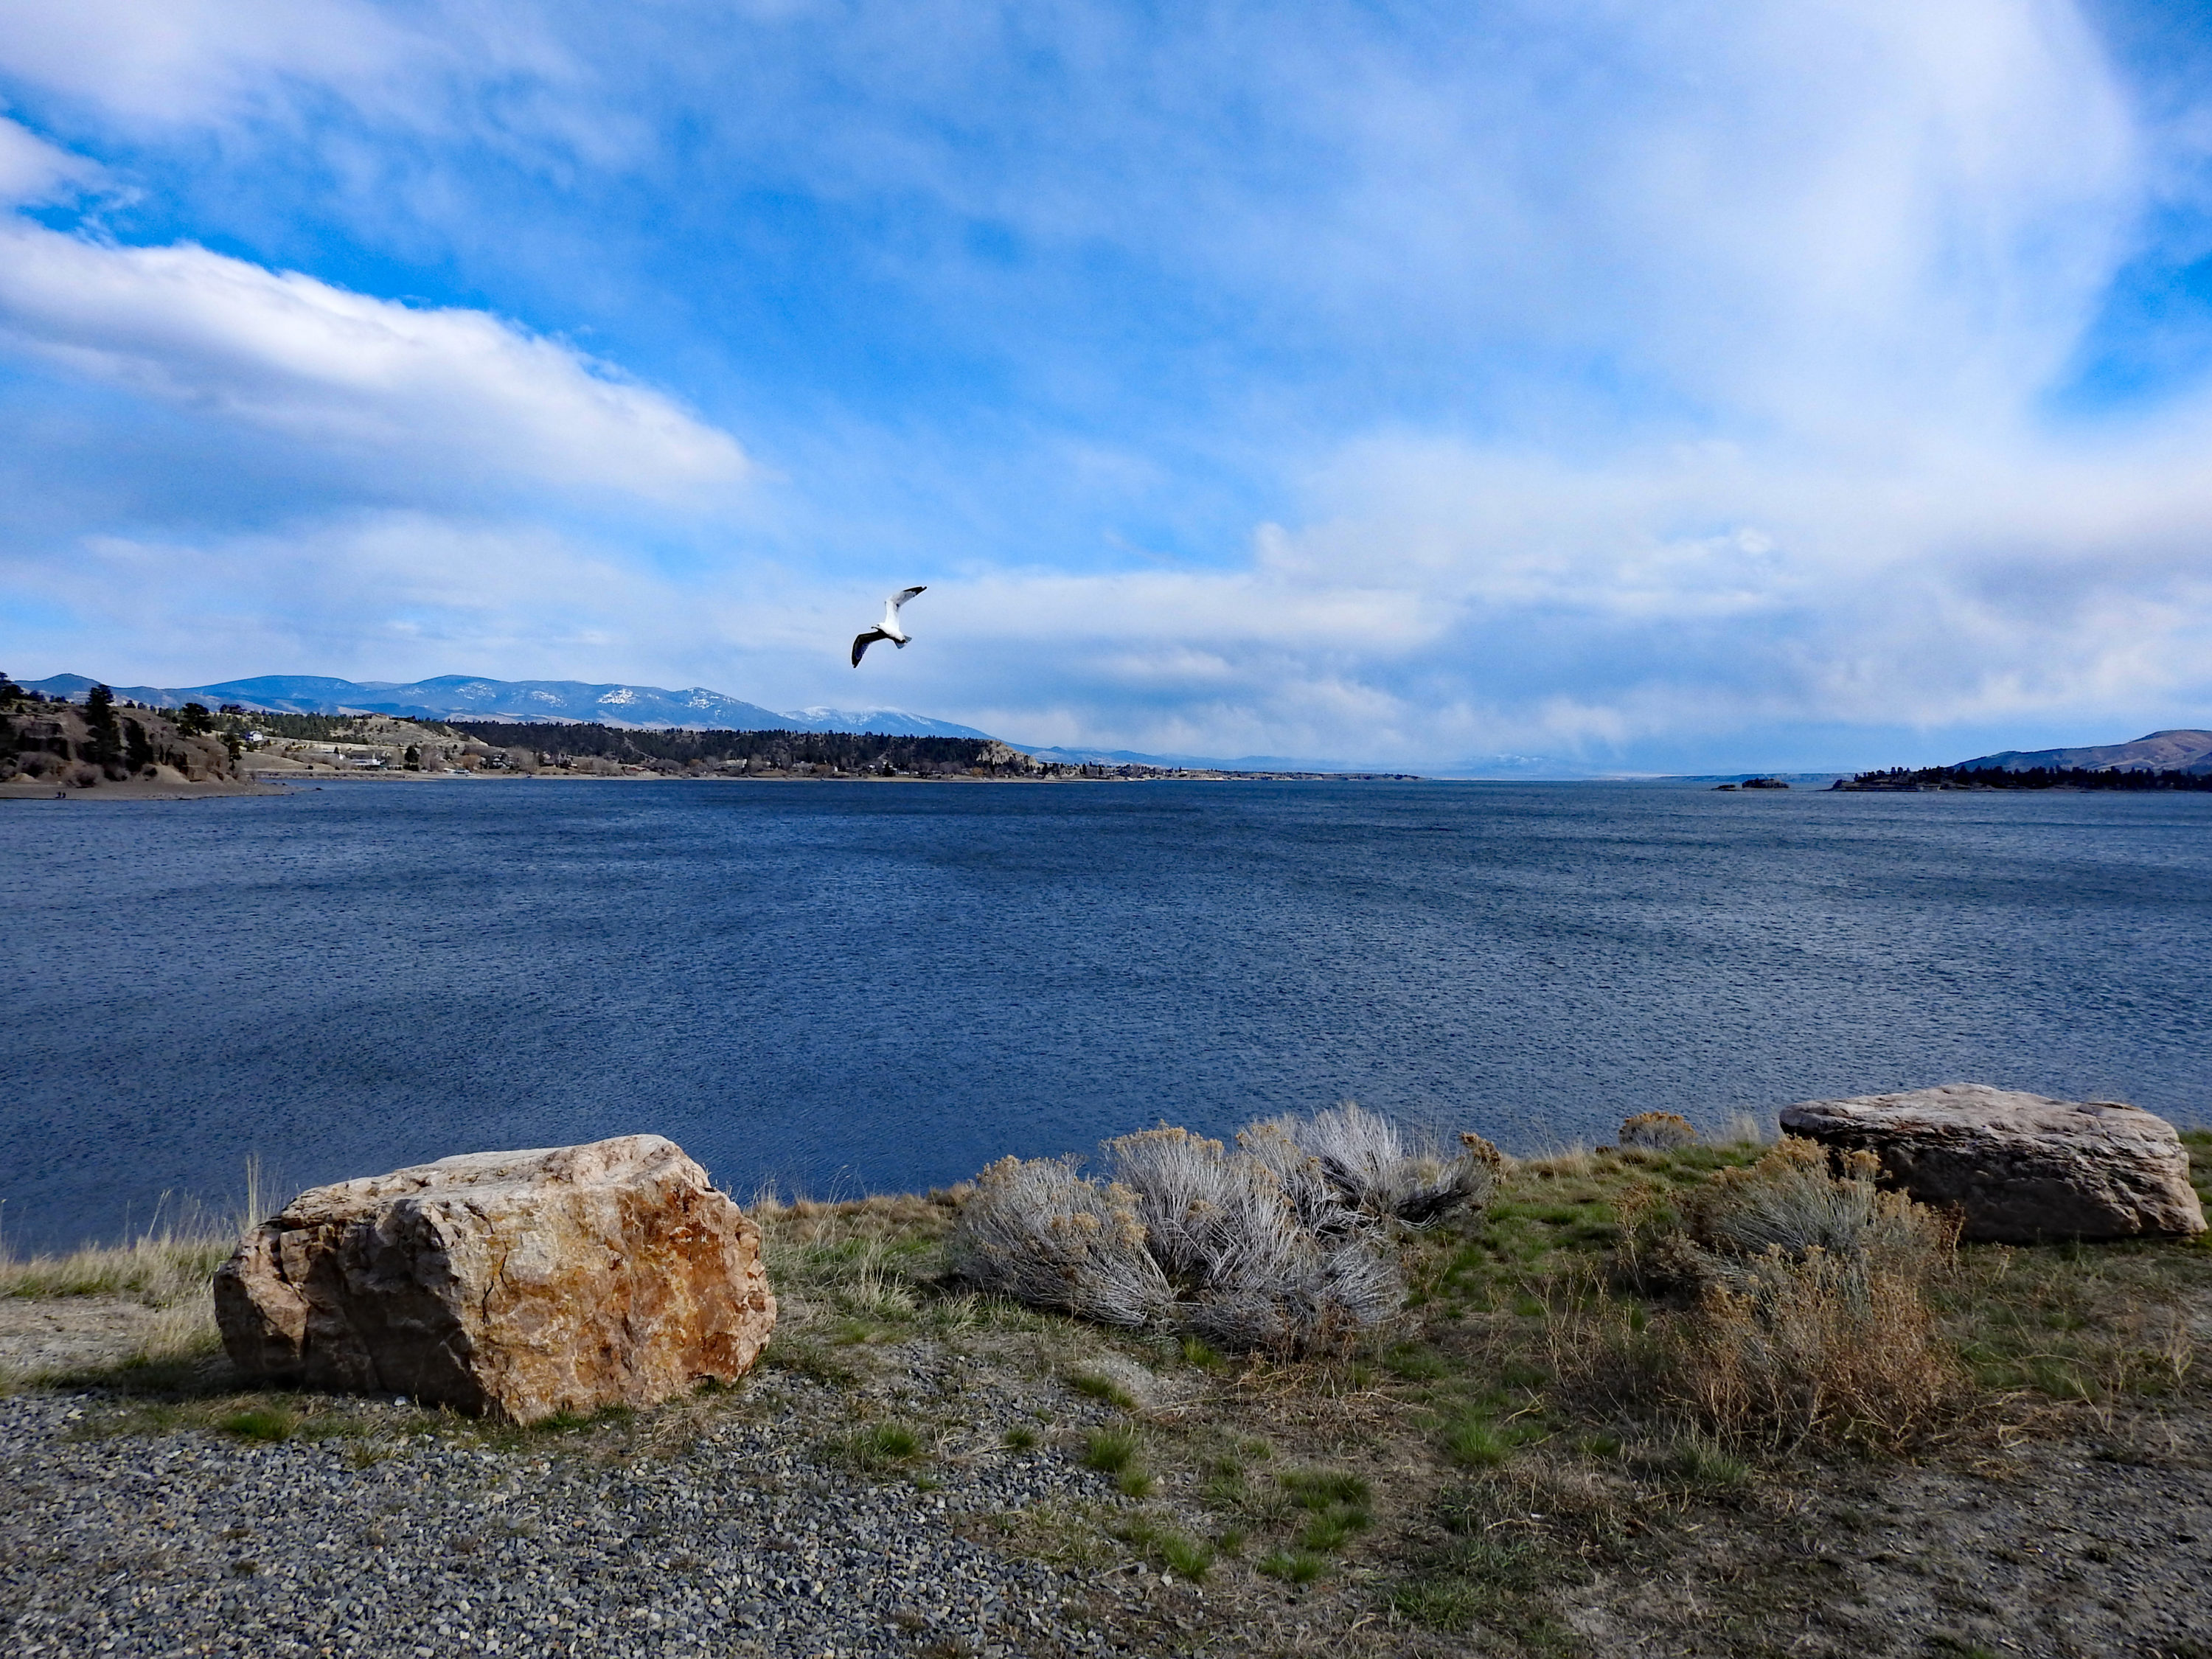 A water bird flies over the blue waters of Canyon Ferry Reservoir in Montana, seen from the rocky and grassy shore. The blue sky is partly cloudy.